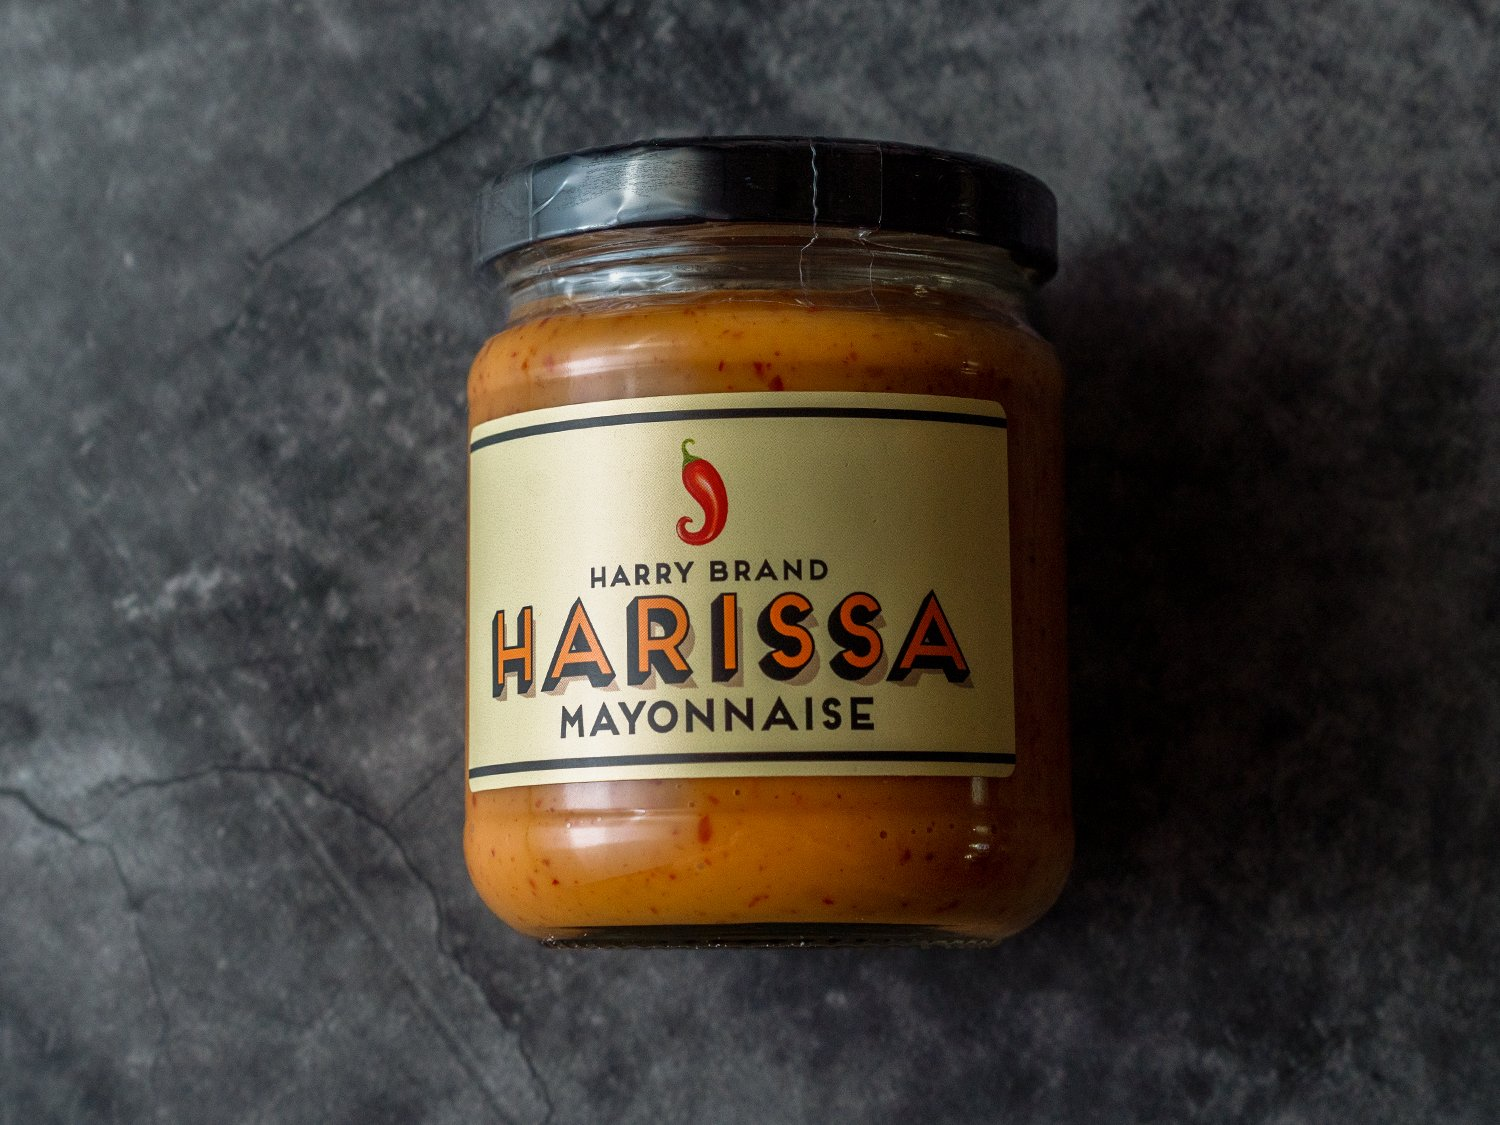 Harissa Mayonnaise for sale - Parsons Nose